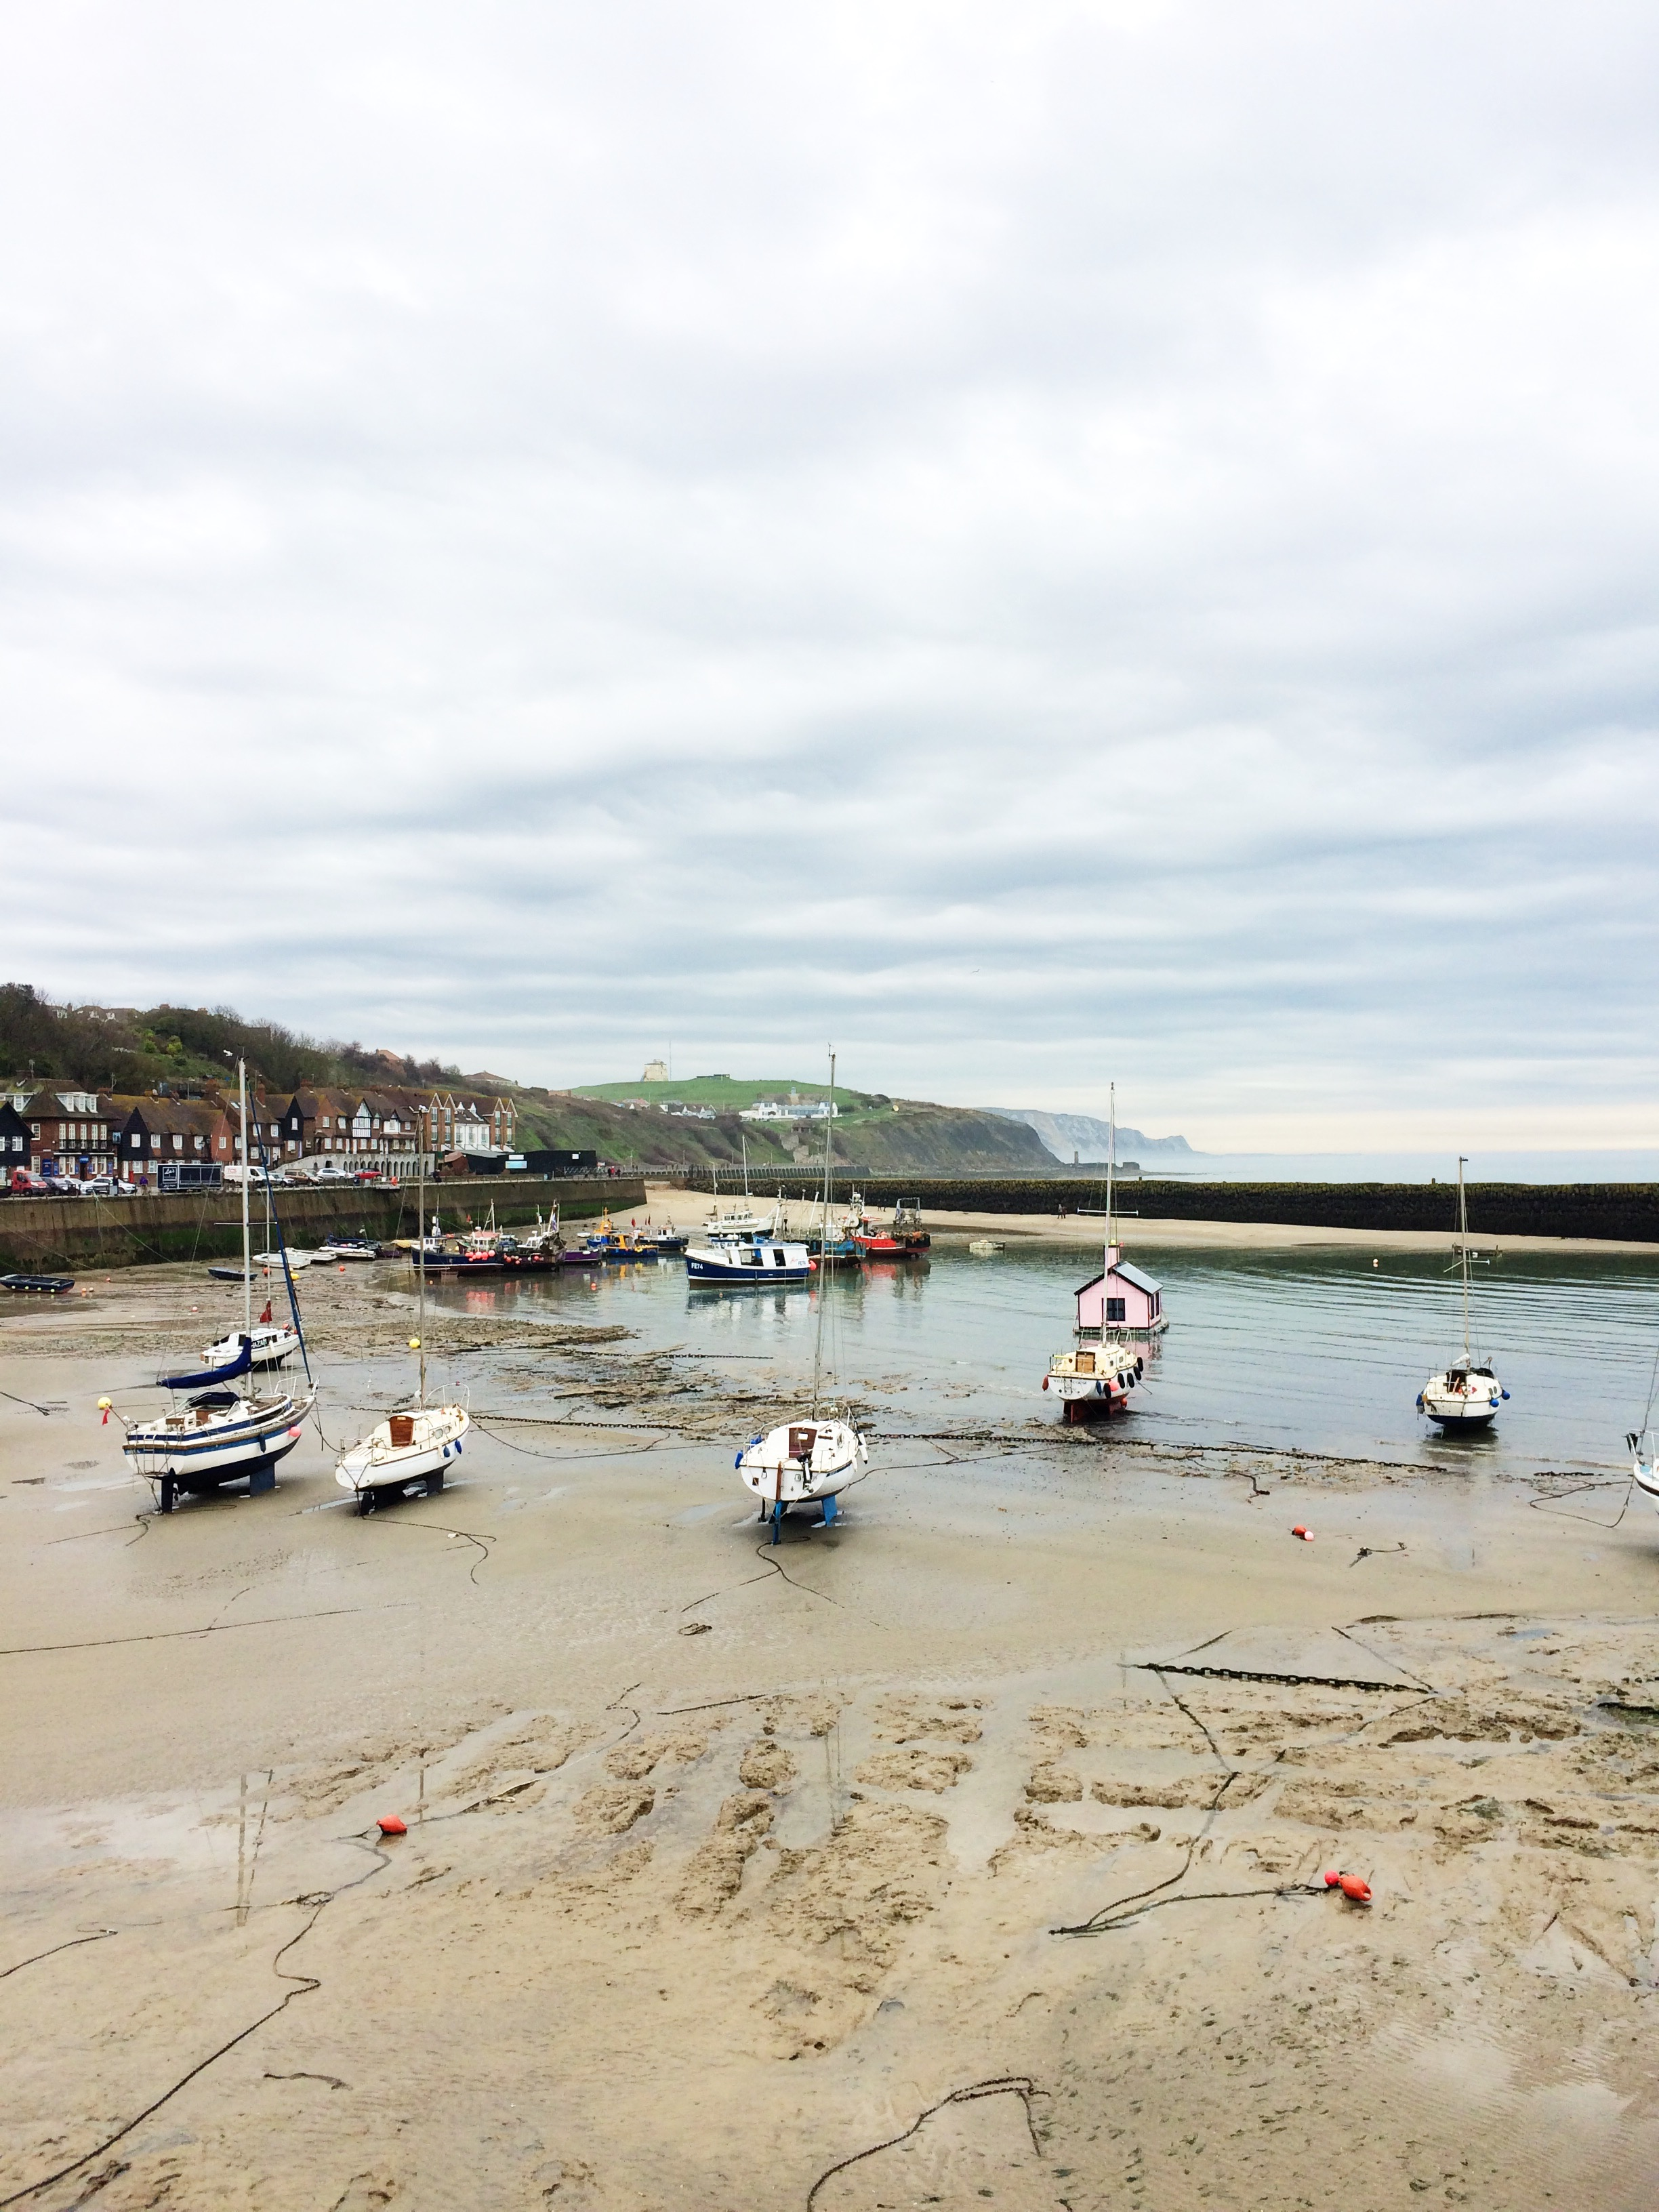 The Harbour by Small Acorns.JPG